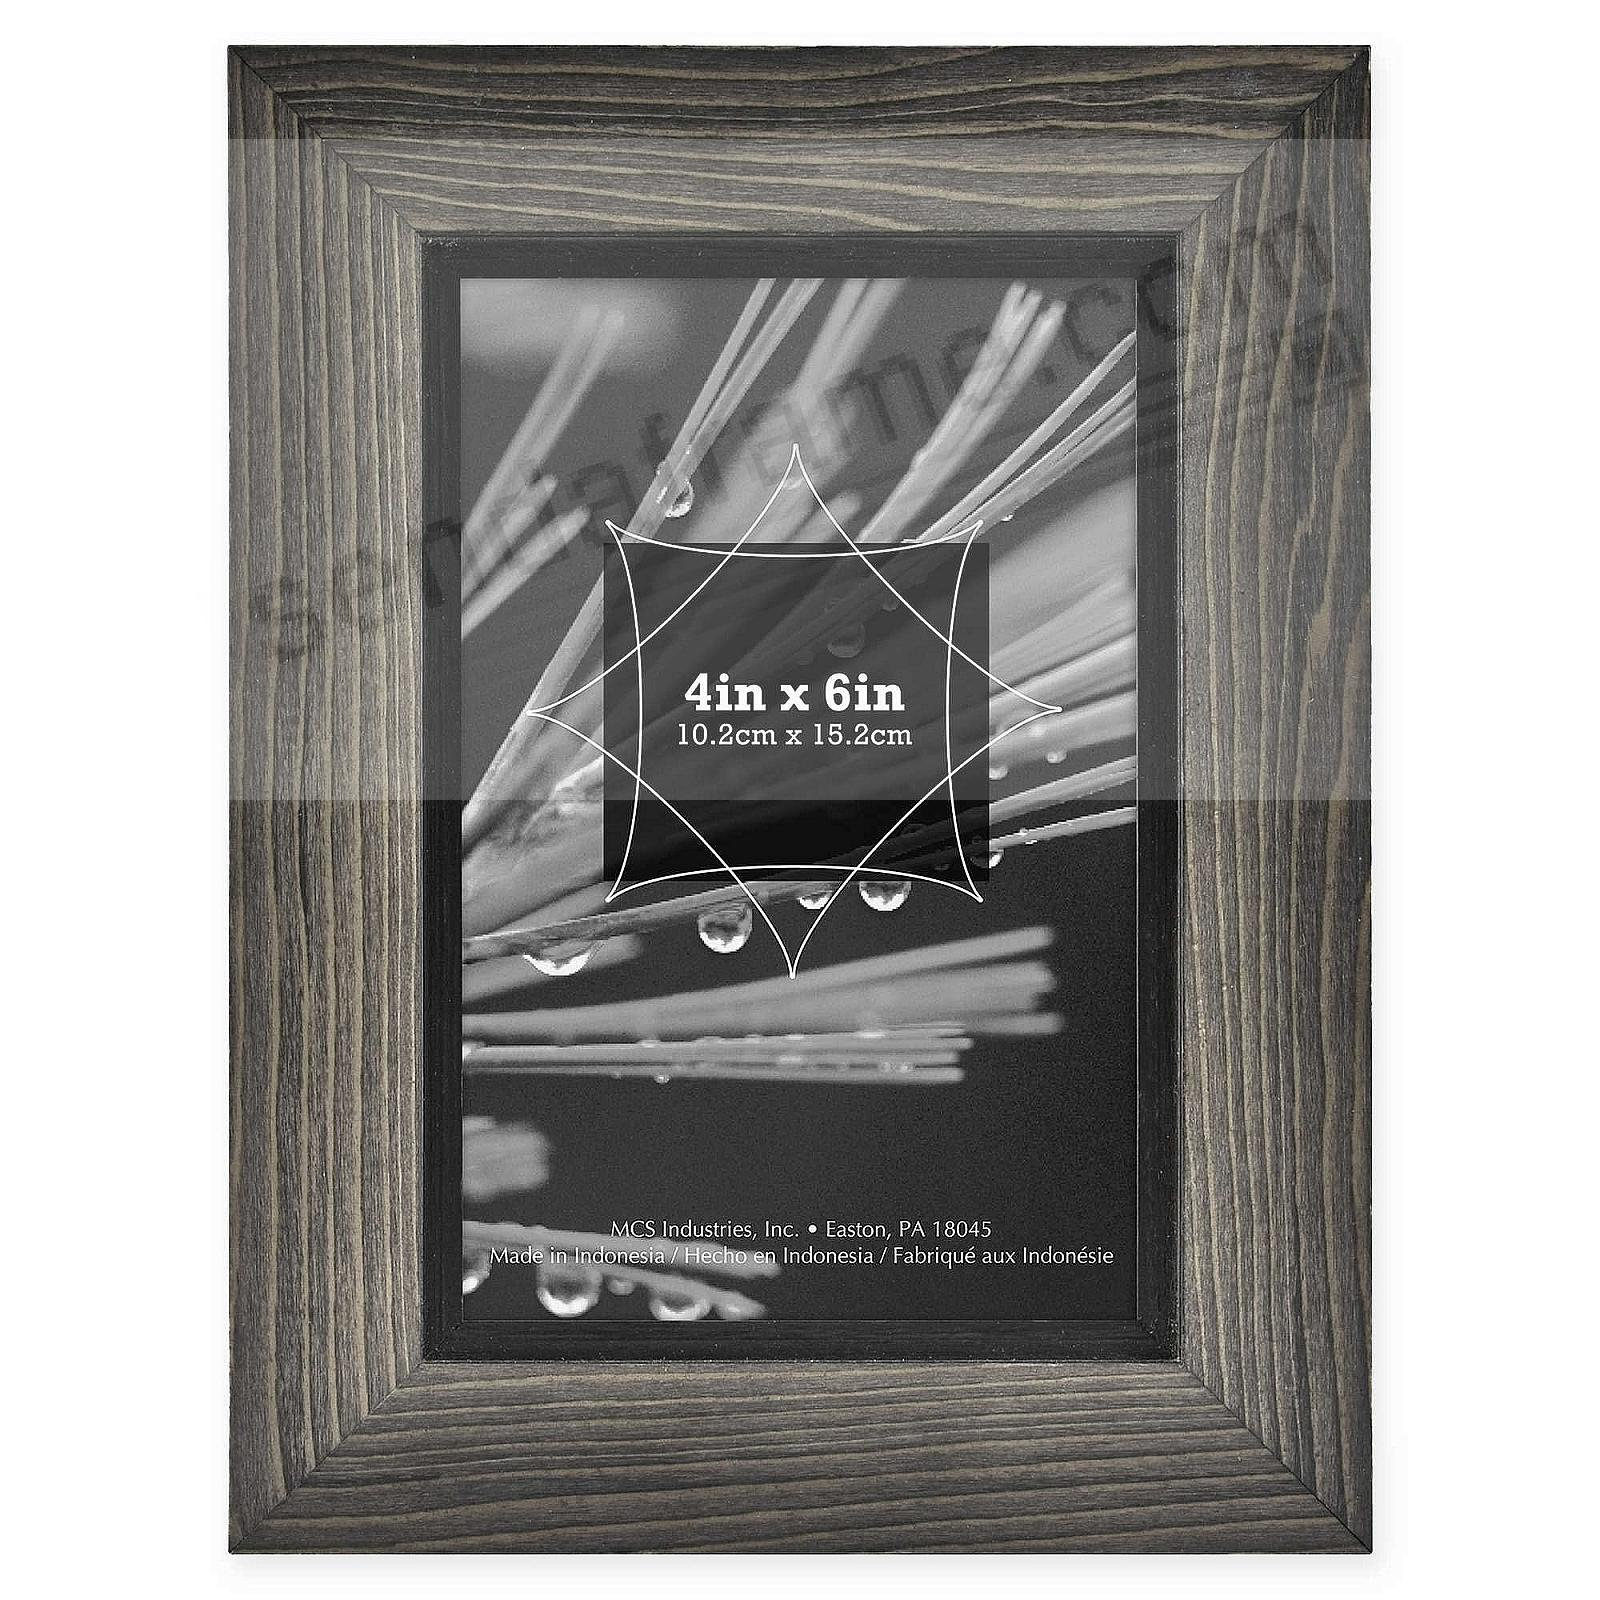 26c3714ca253 Timber Distressed Gray Black Wood 4x6 Frame By Mcs Picture Frames